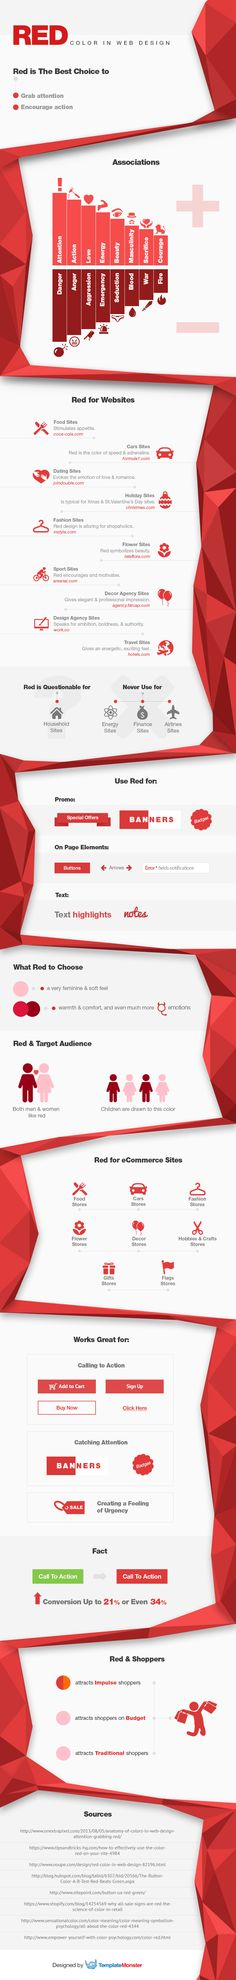 Red Color in Web Design